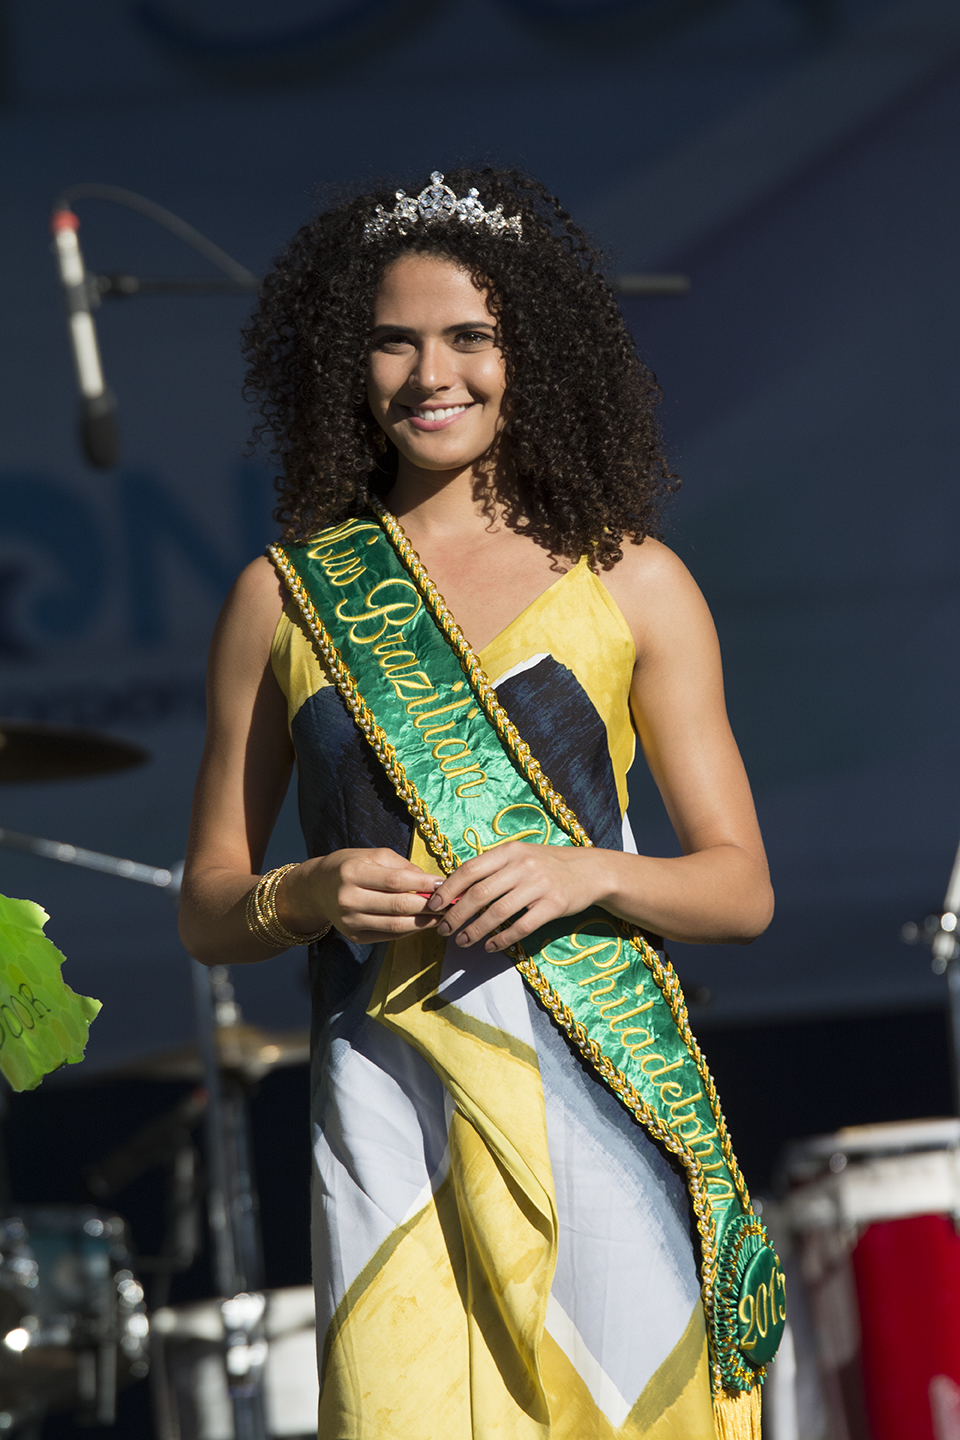 20150921_brazilian_day_philly_642